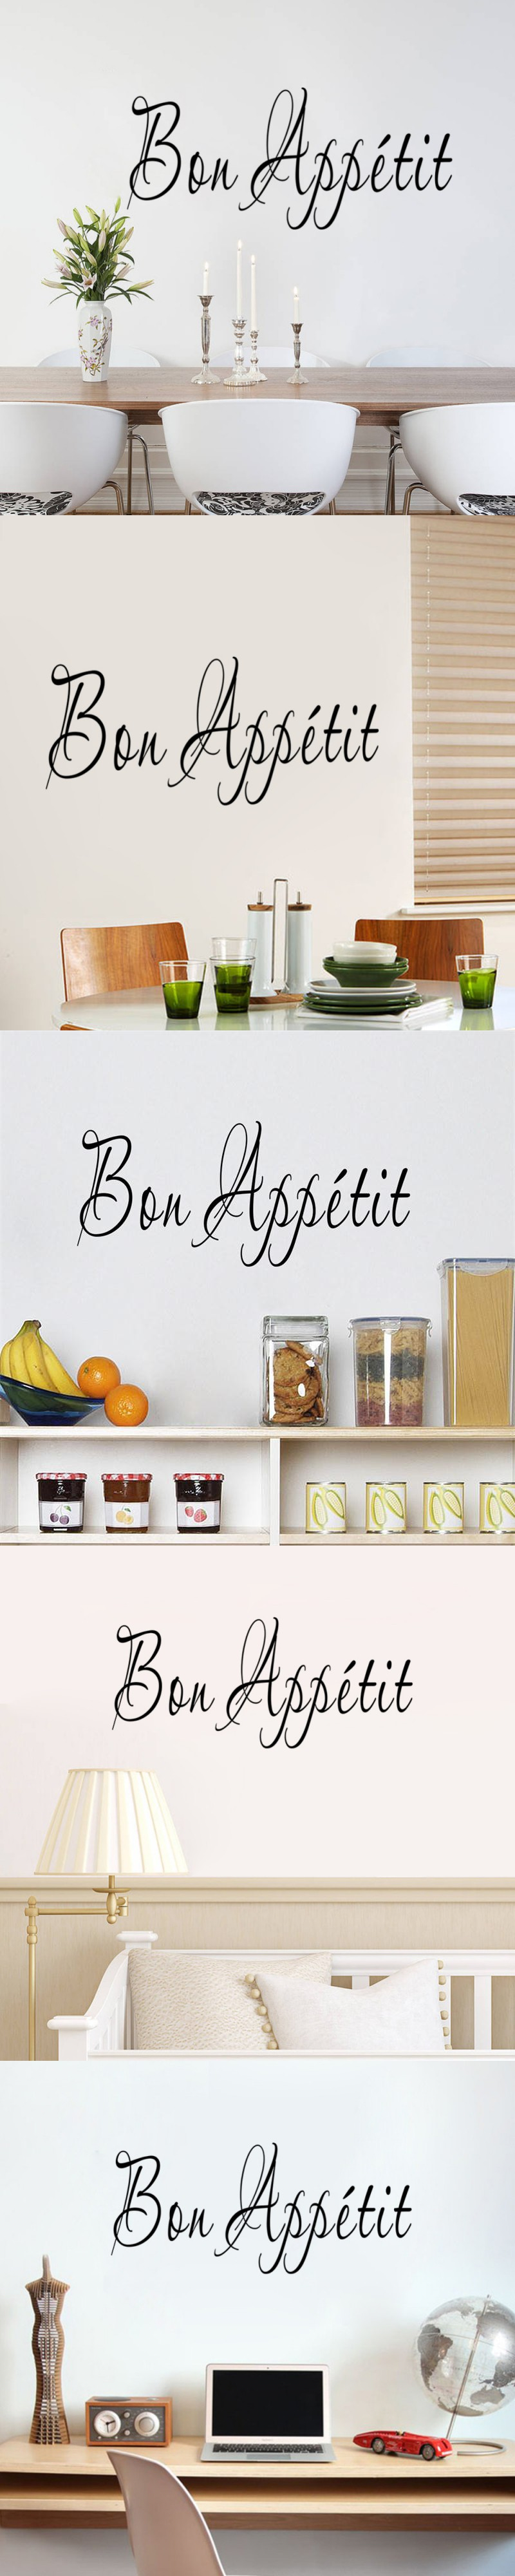 Creative French Language Bon Appetit Restaurant Store Kitchen Decoration  Family Home Decal Wall Sticker Mural Art Stickers